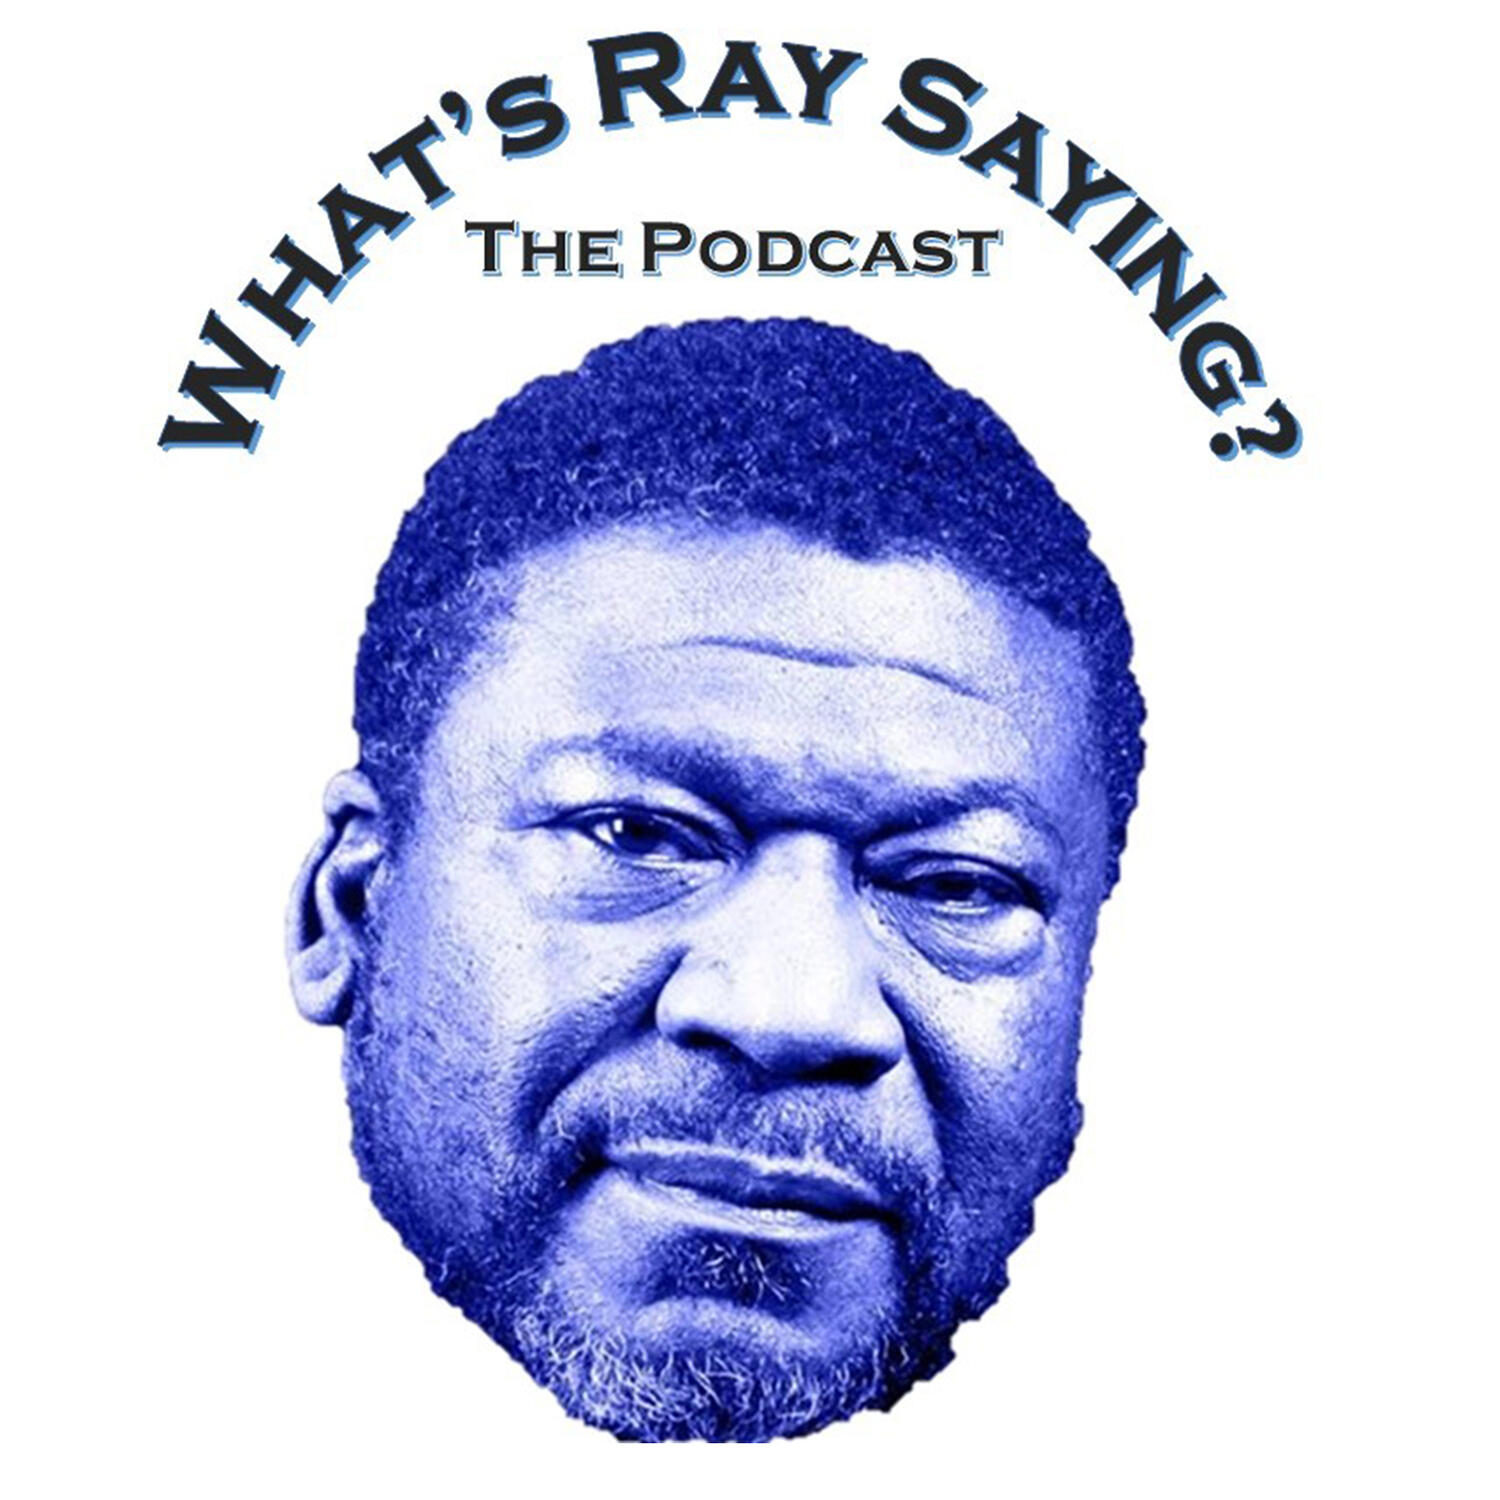 316: Blacks and Indians: From What's Ray Saying?